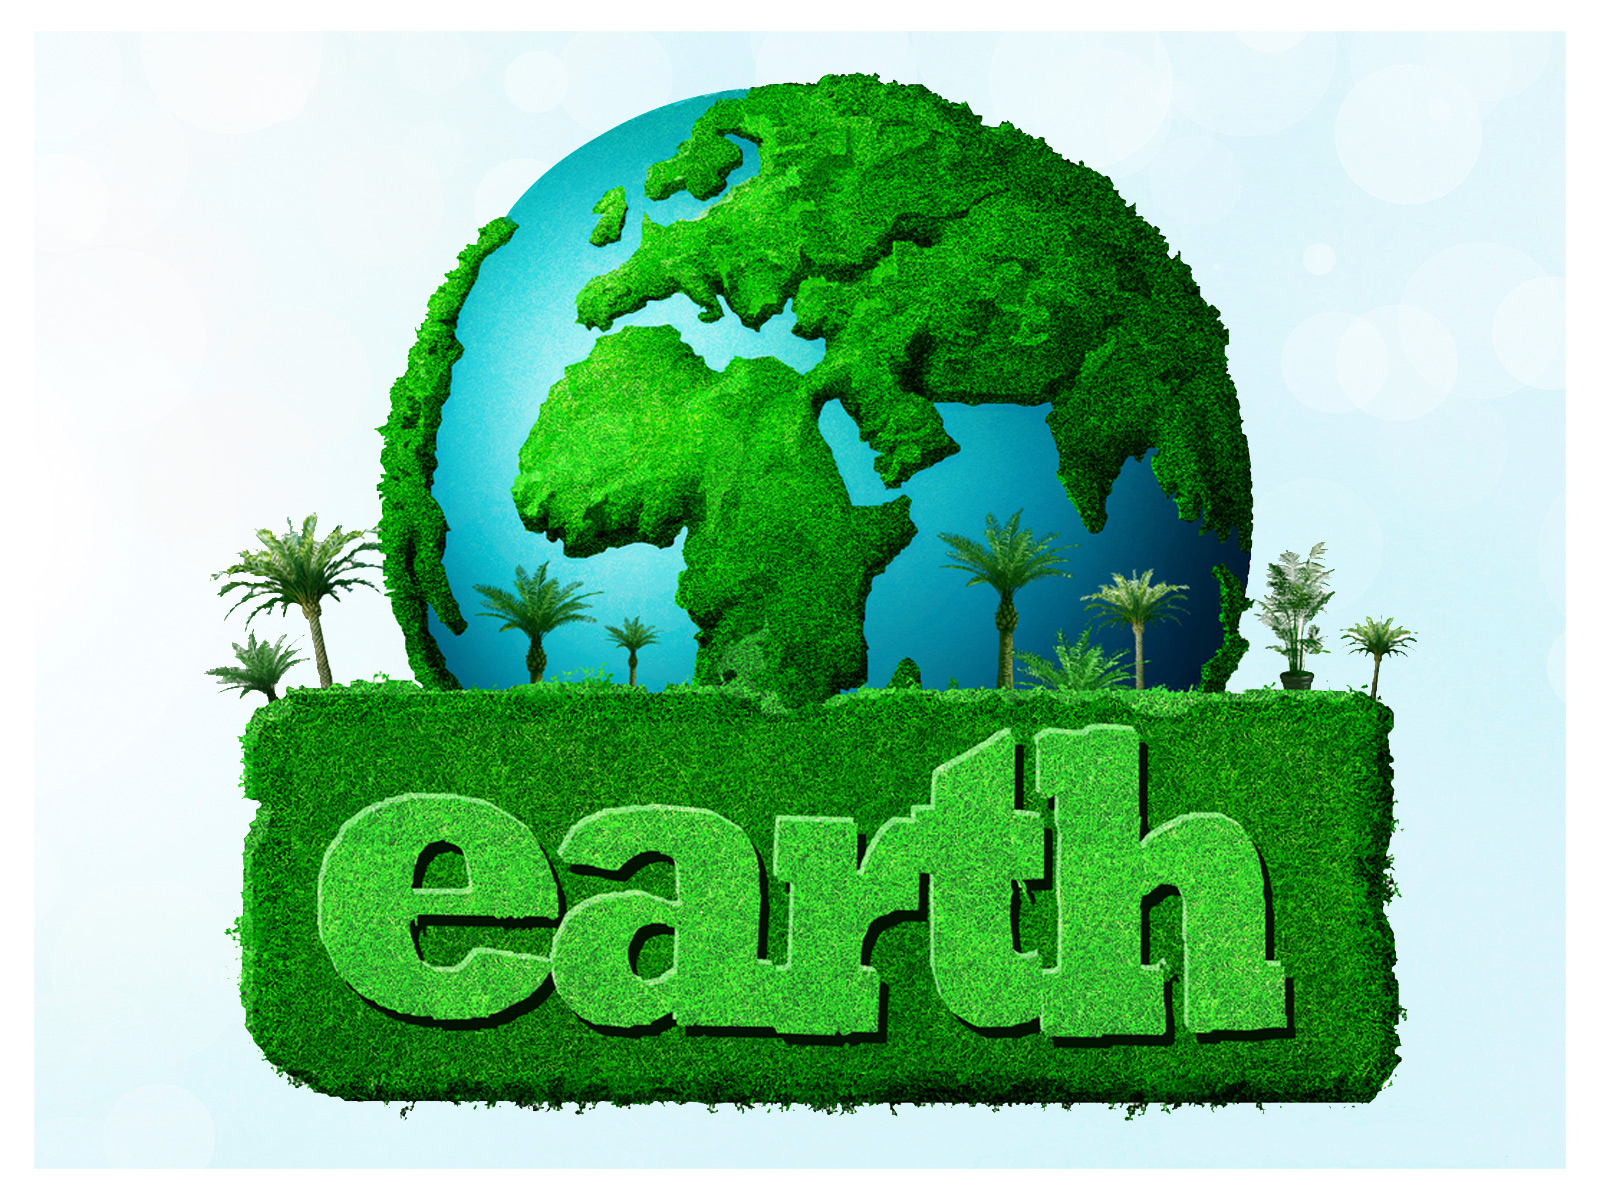 green earth Welcome to green earth pest control your best bet for hassle-free pest control our specialists will provide you the finest care to ensure you have a good night's rest without any pest invasion.